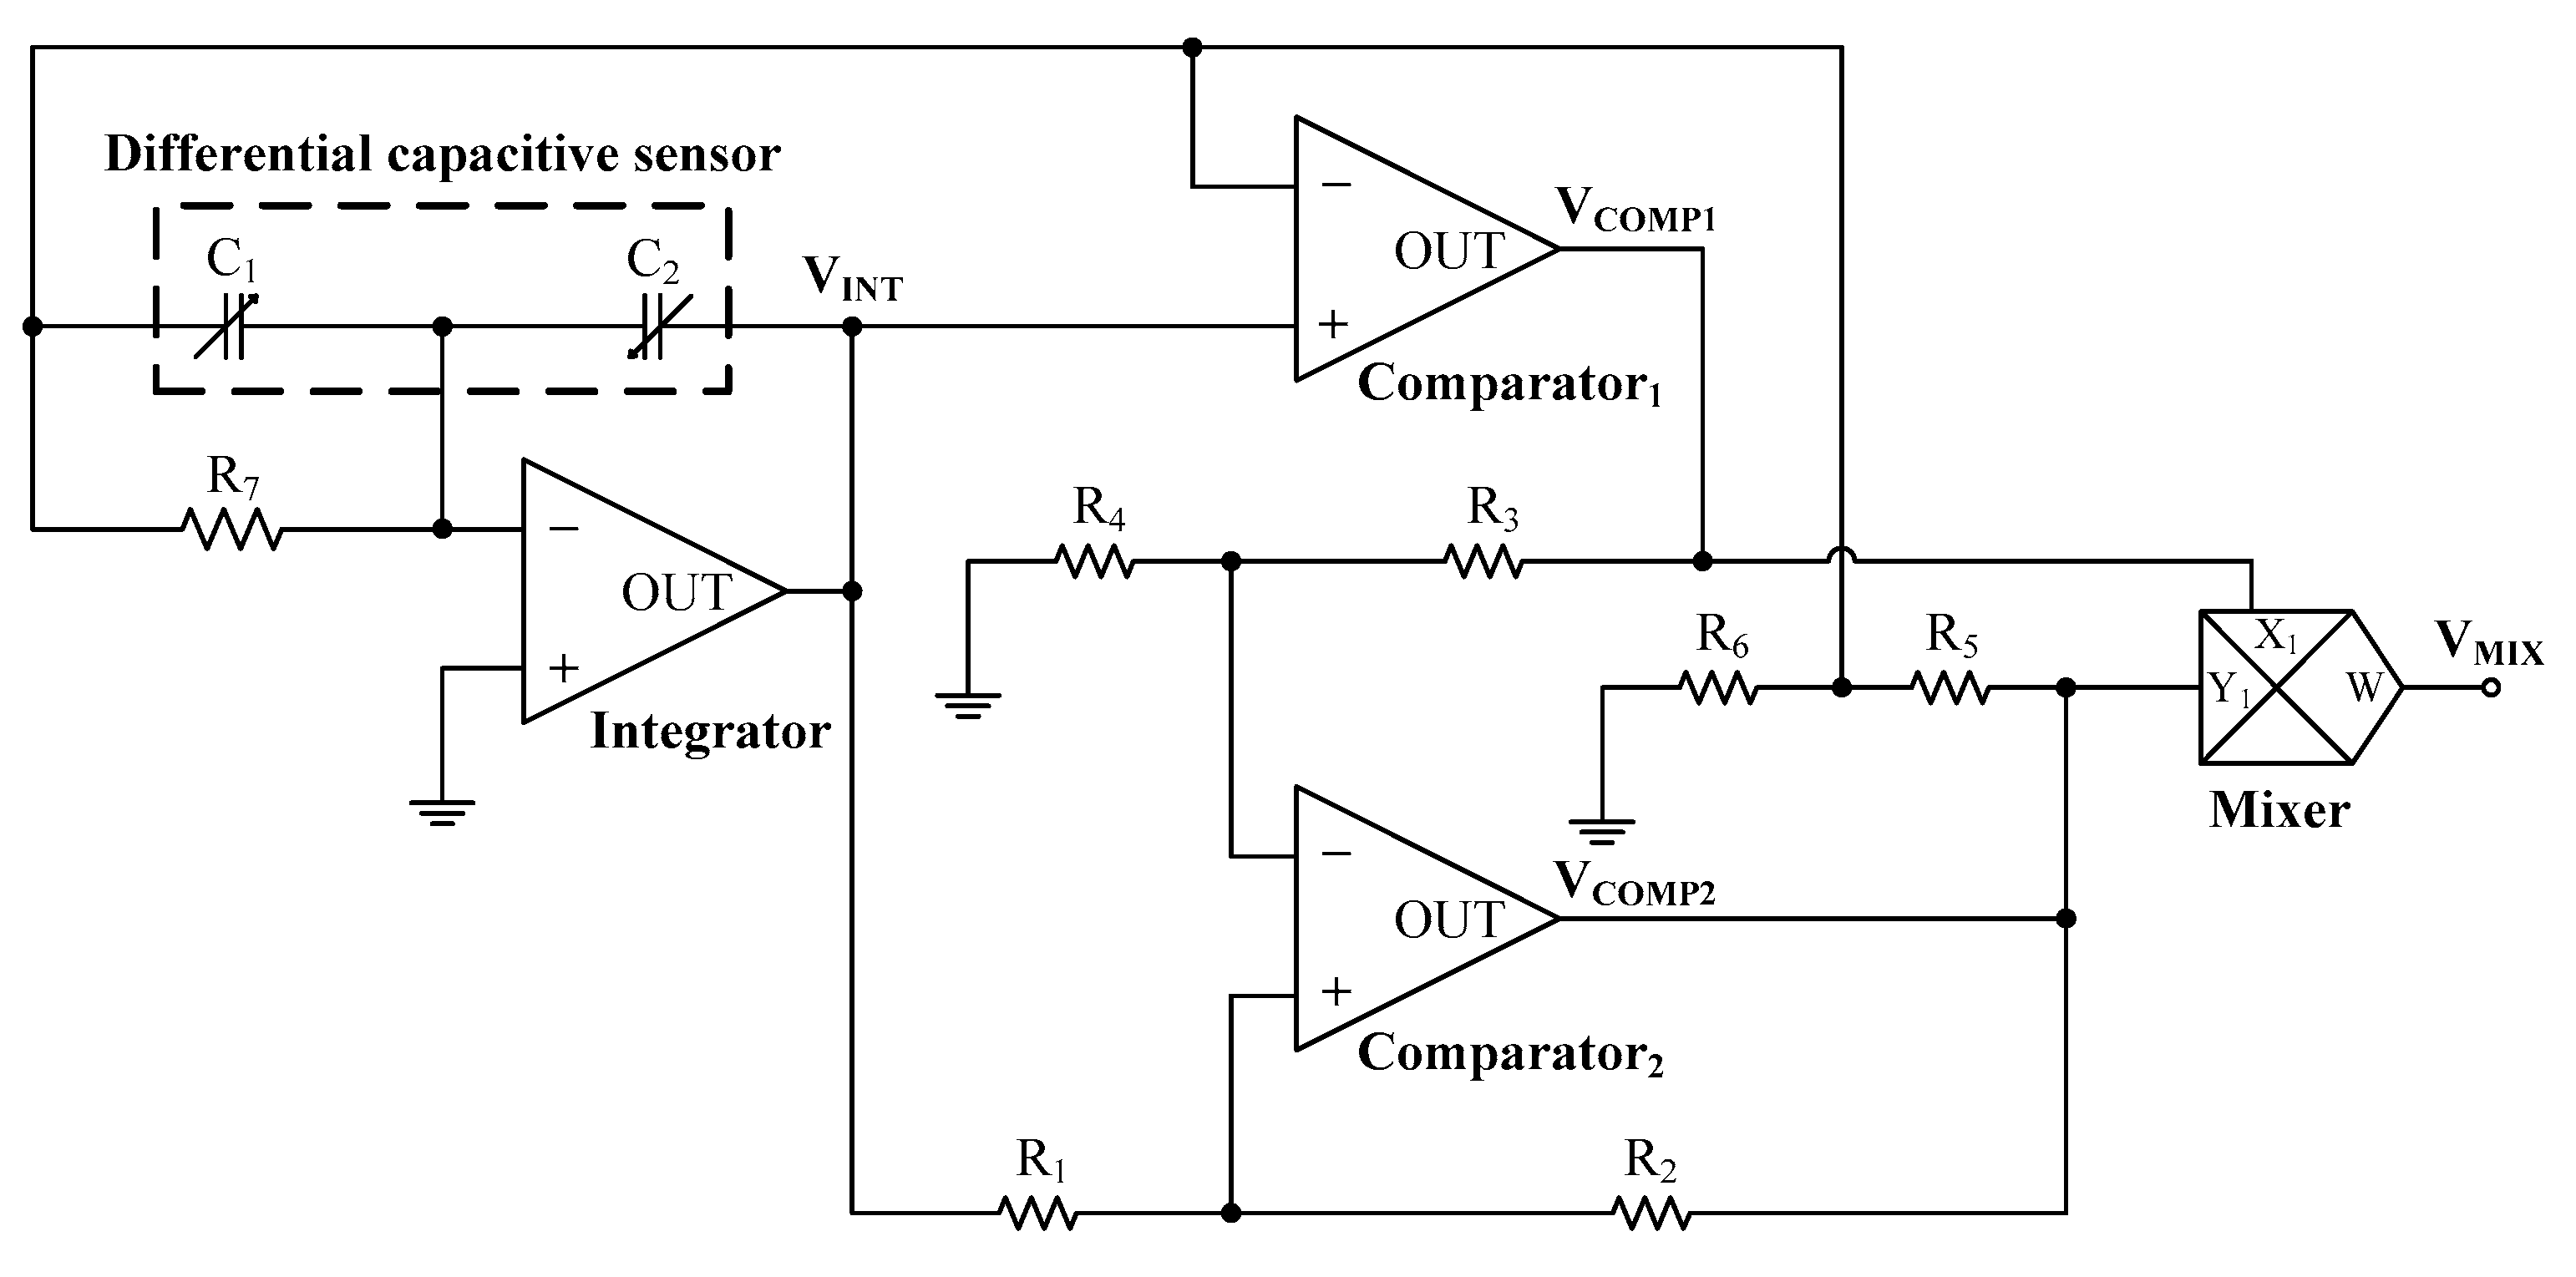 Electronics Free Full Text A Capacitance To Time Converter Based Dc Circuits Challenge From Challenge39s Main Window The 08 00080 G002 Figure 2 Schematic Circuit